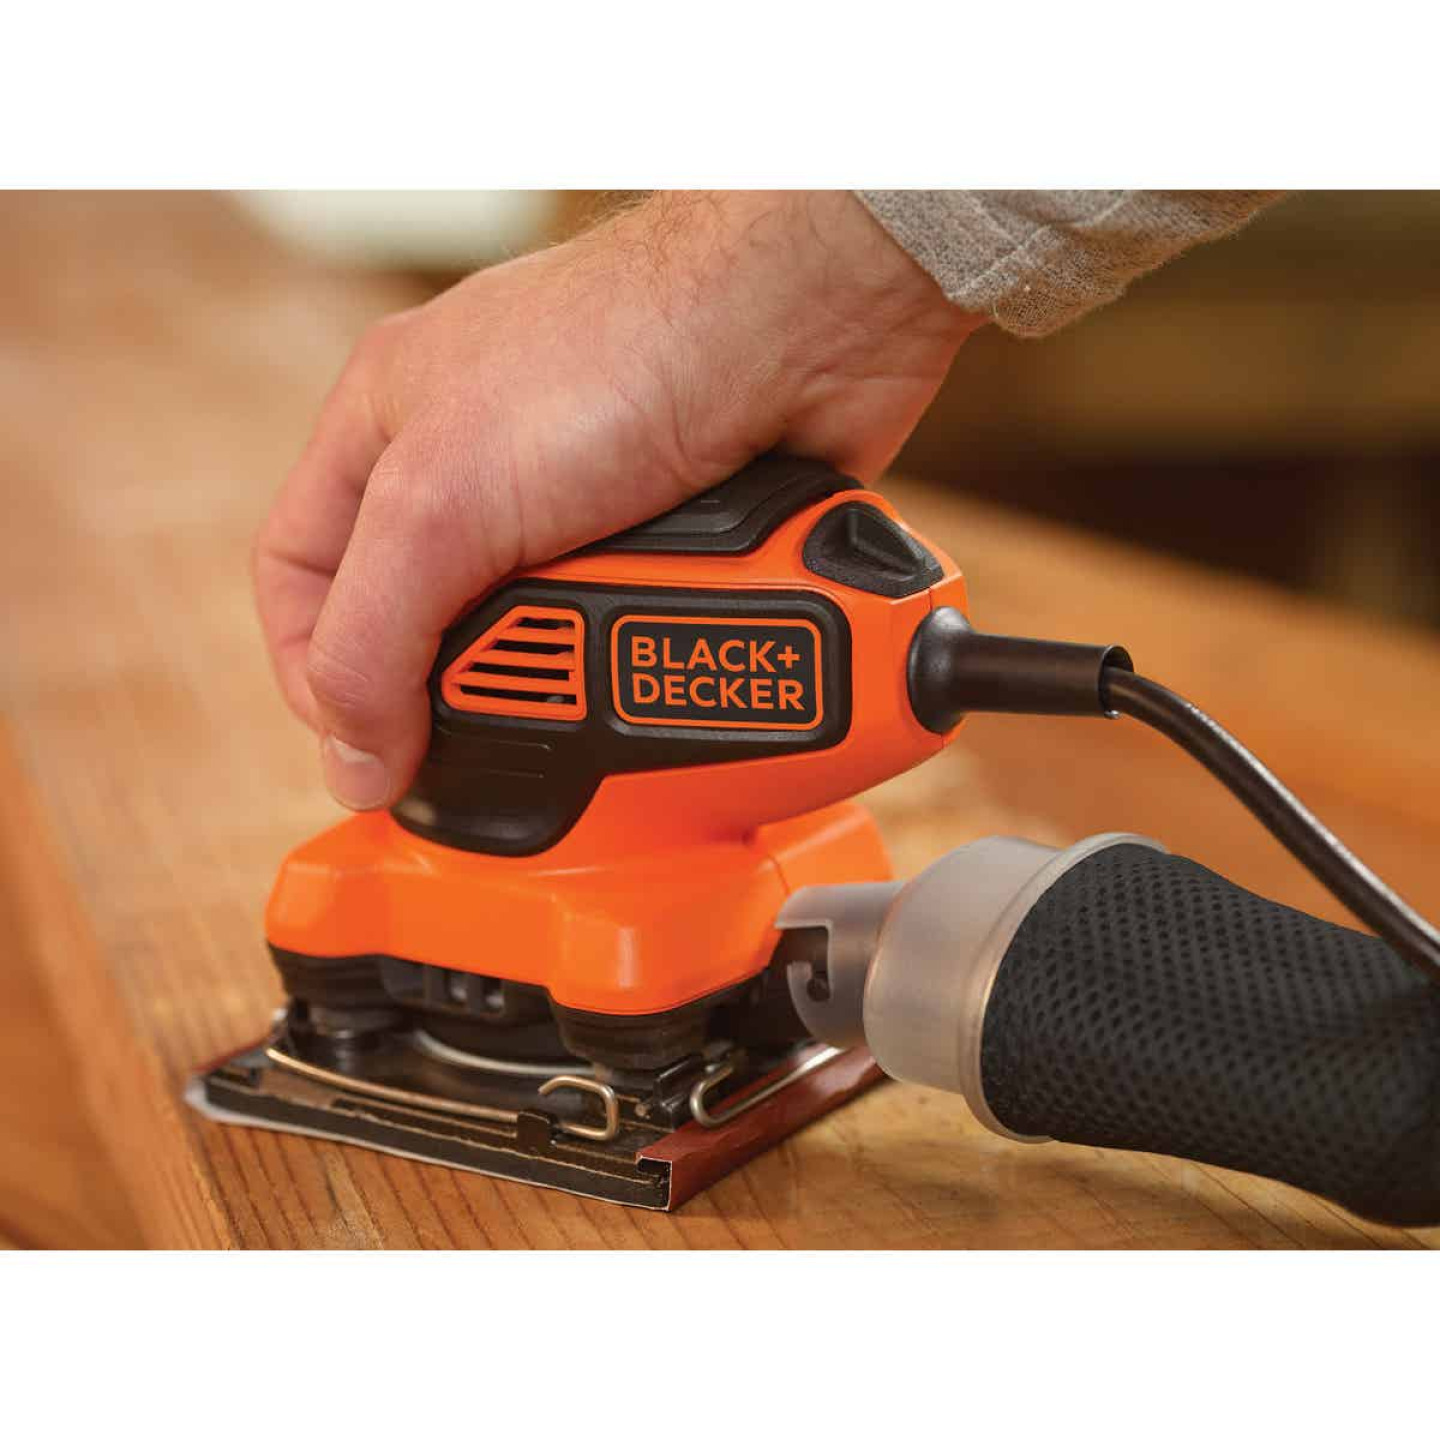 Black & Decker 1/4 Sheet 2.0A Finish Sander Image 3